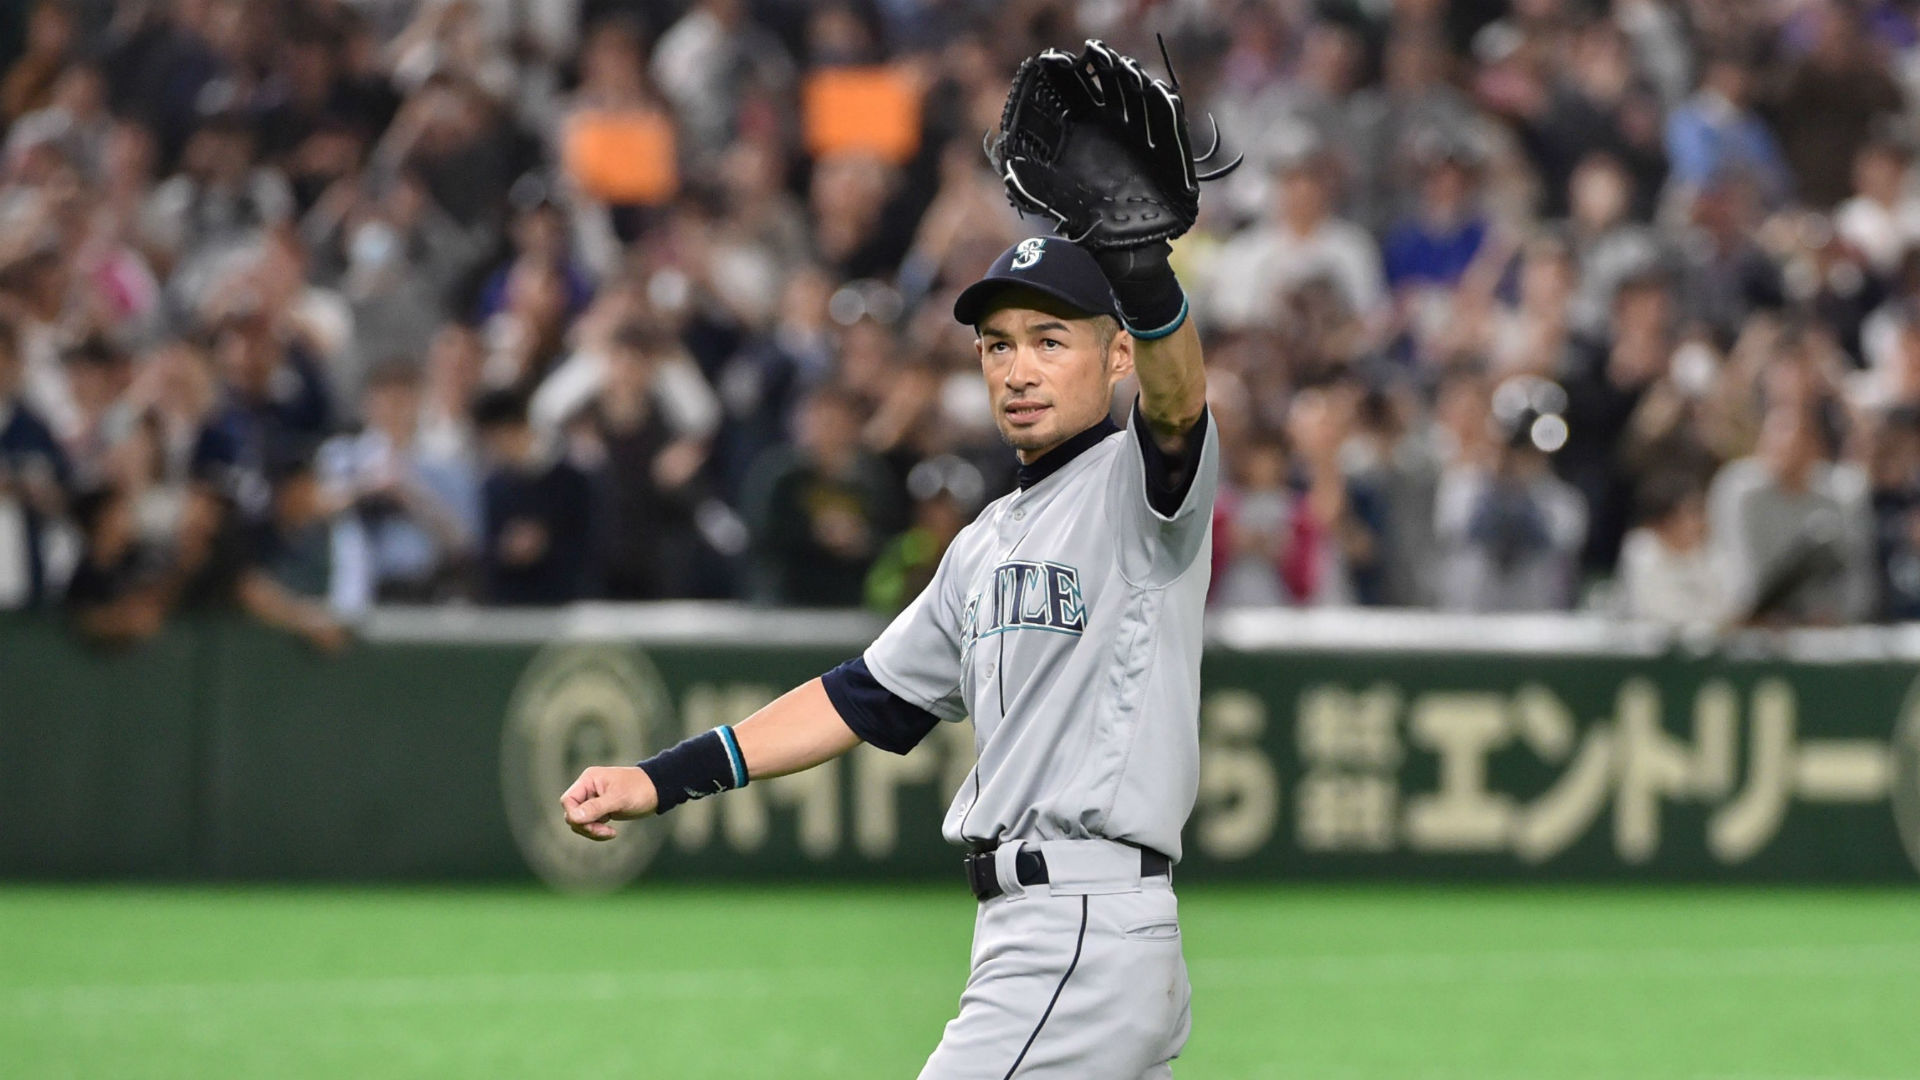 Japan baseball great Suzuki ends glittering MLB career